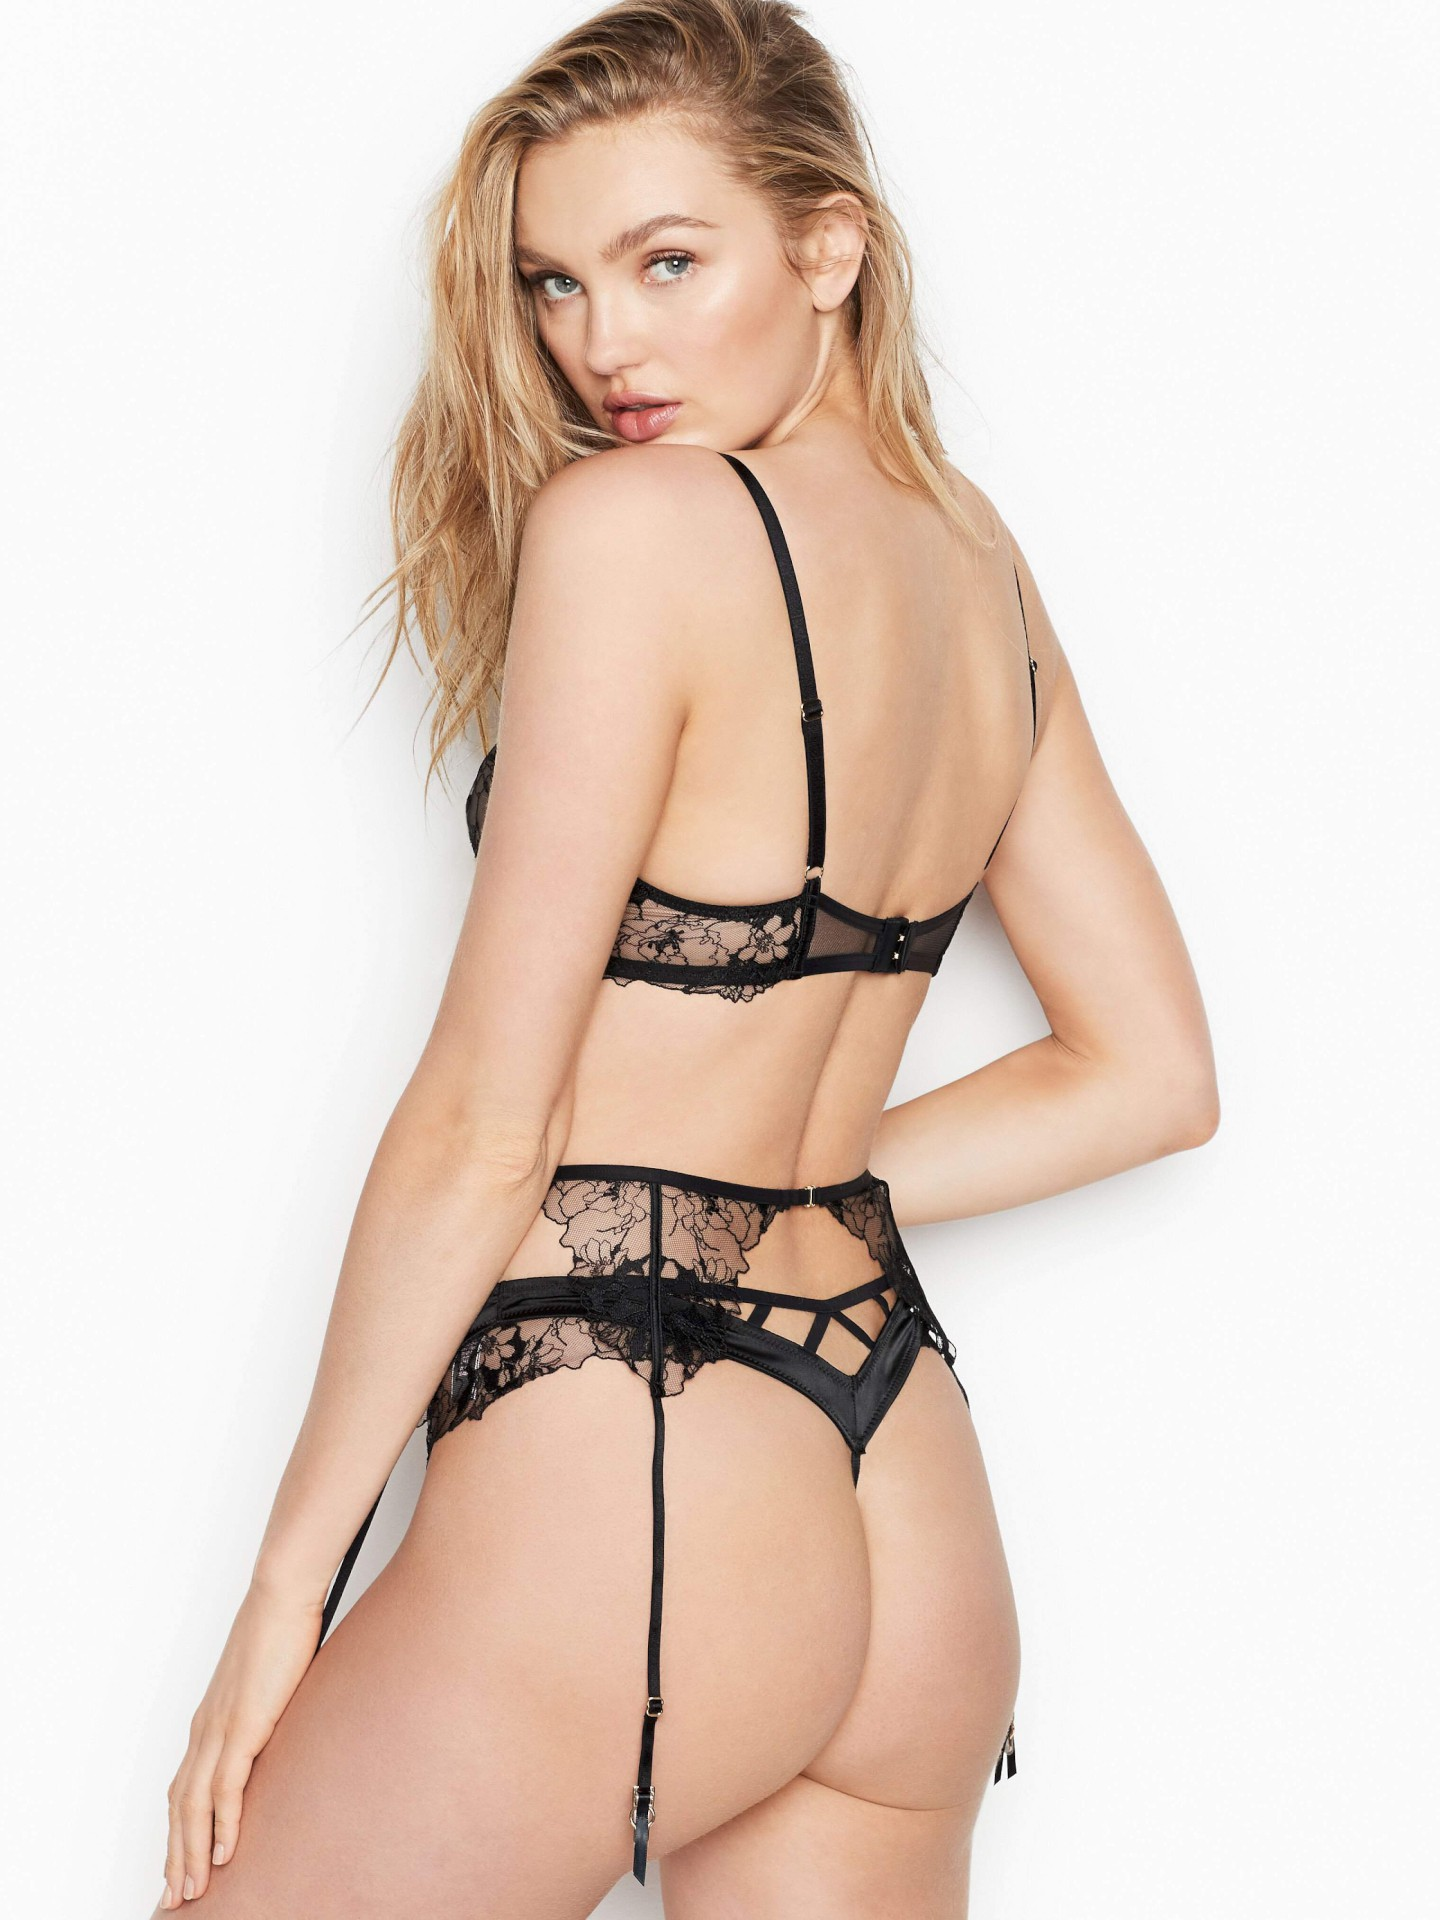 Romee Strijd Sexy Ass And Boobs In See Through Lingerie